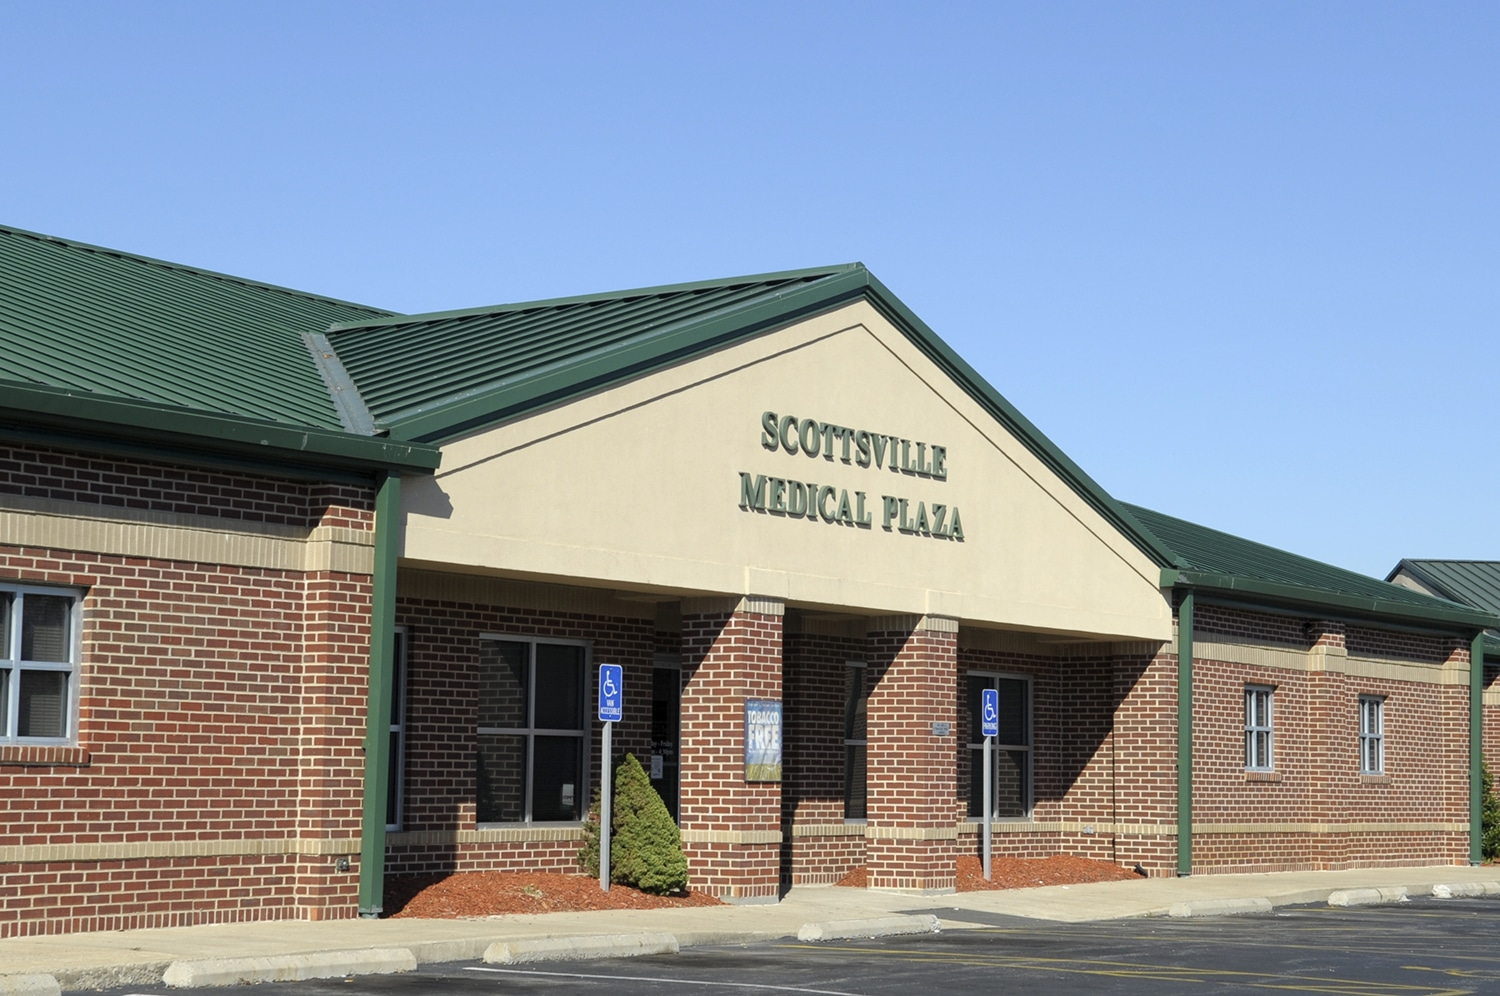 Exterior view of Scottsville Medical Plaza